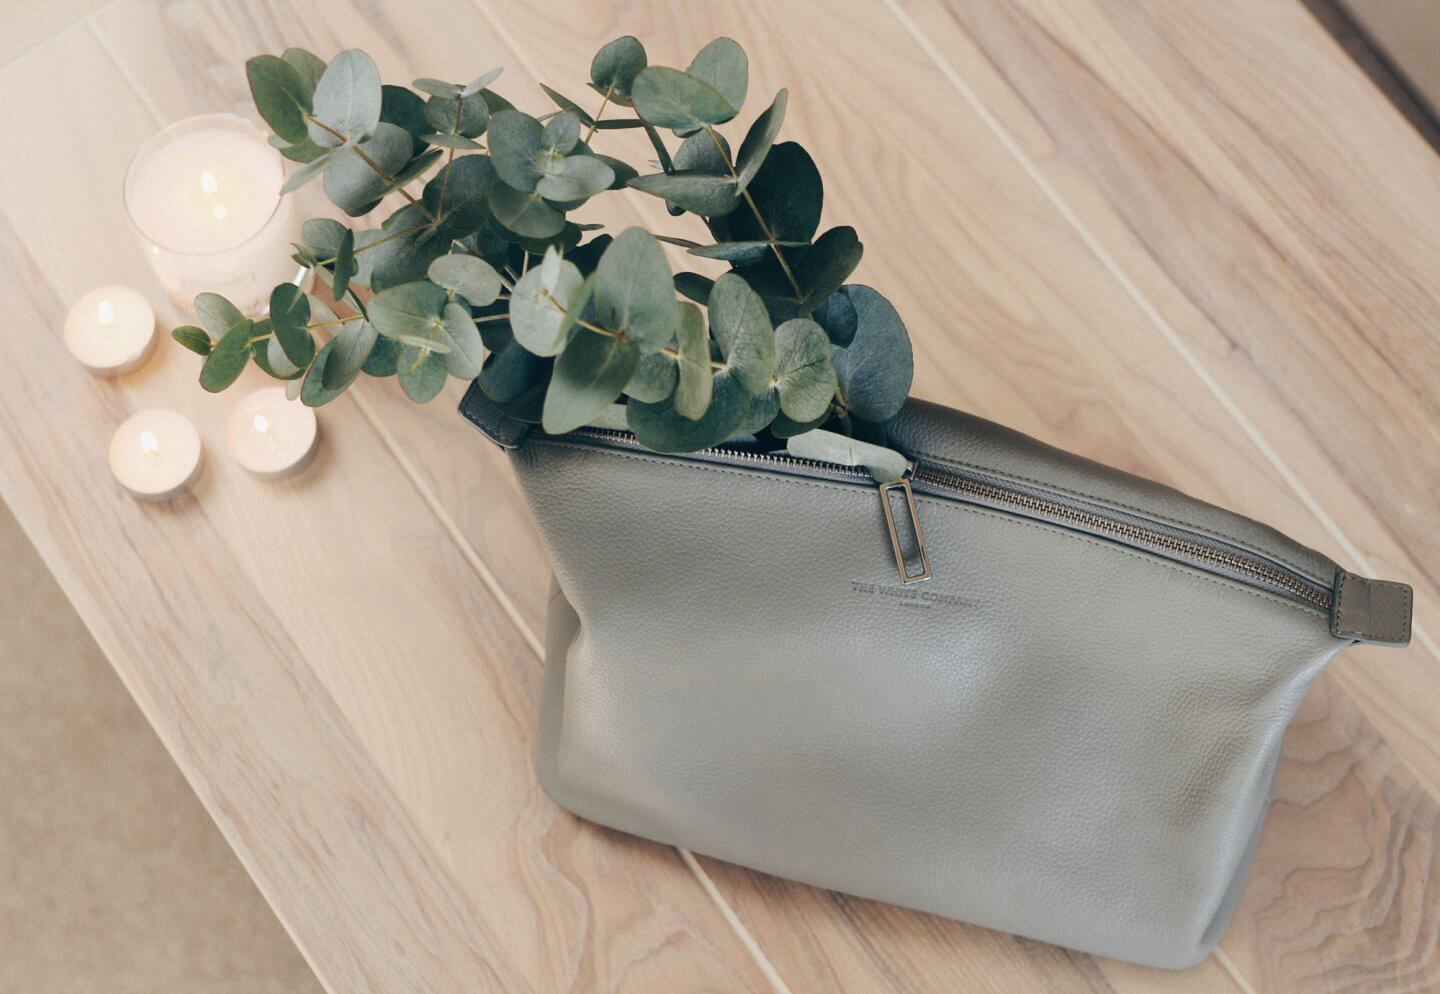 The White Company leather wash bag in grey